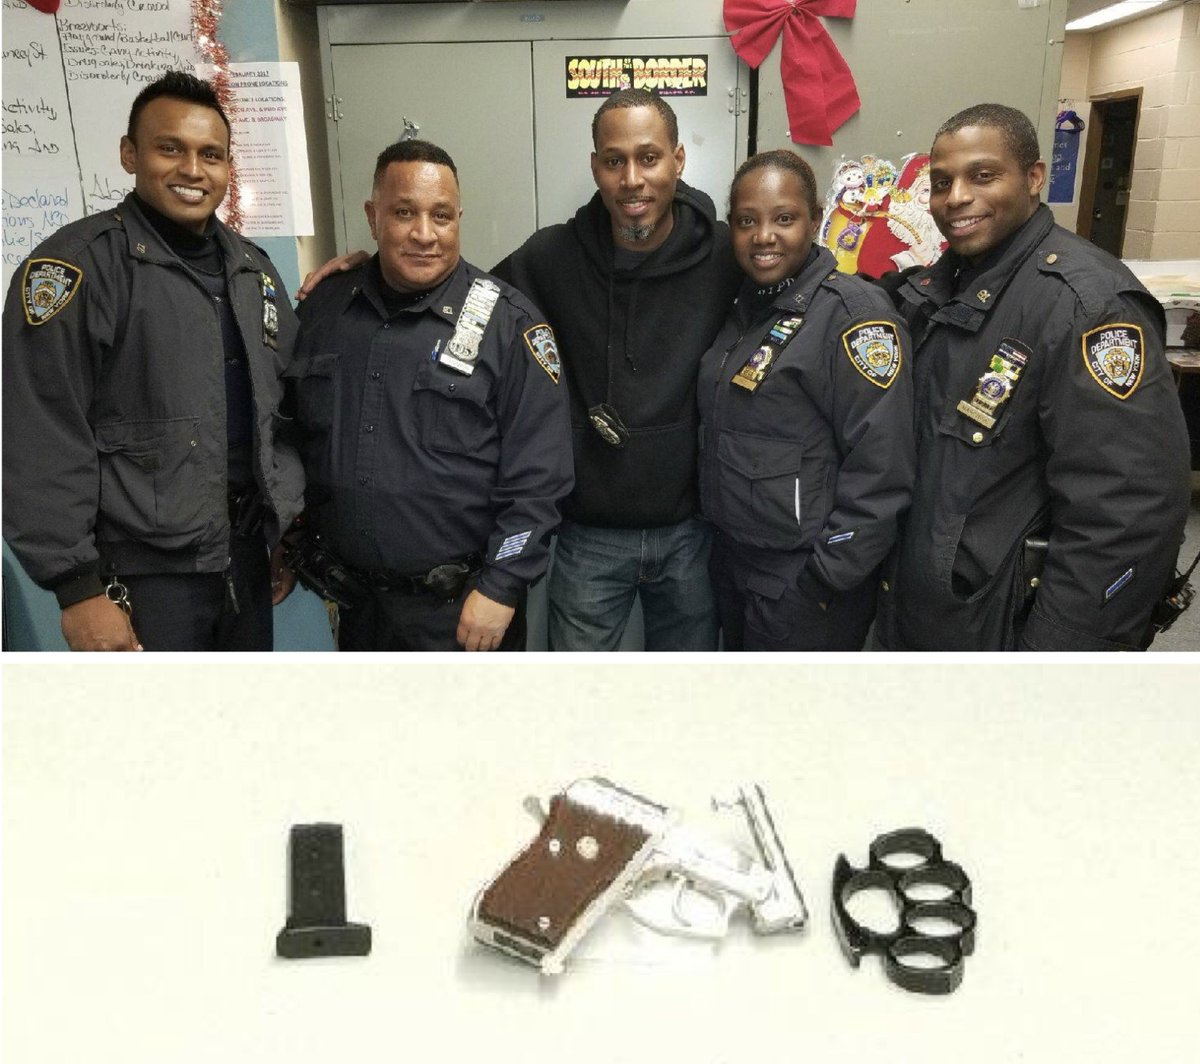 Great work by @NYPD81Pct officers for taking an illegal gun off the streets of #Brooklyn. That's #NYPDprotecting